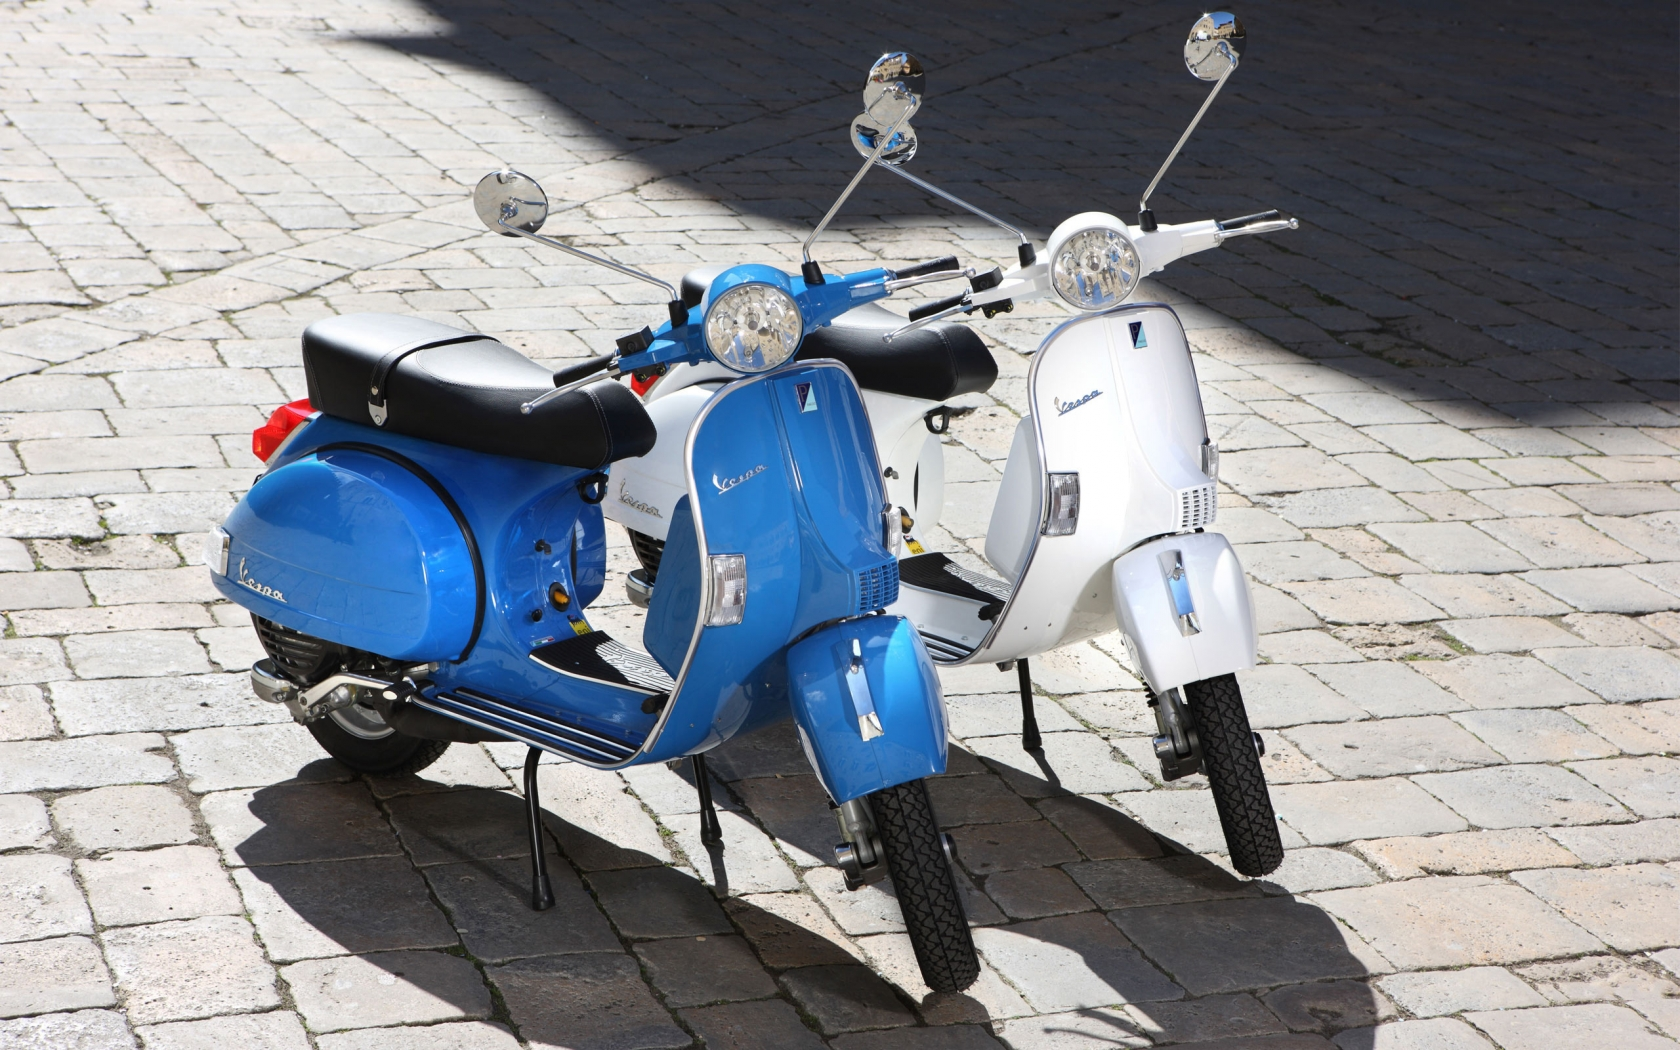 Vespa PX 150A 2011 for 1680 x 1050 widescreen resolution